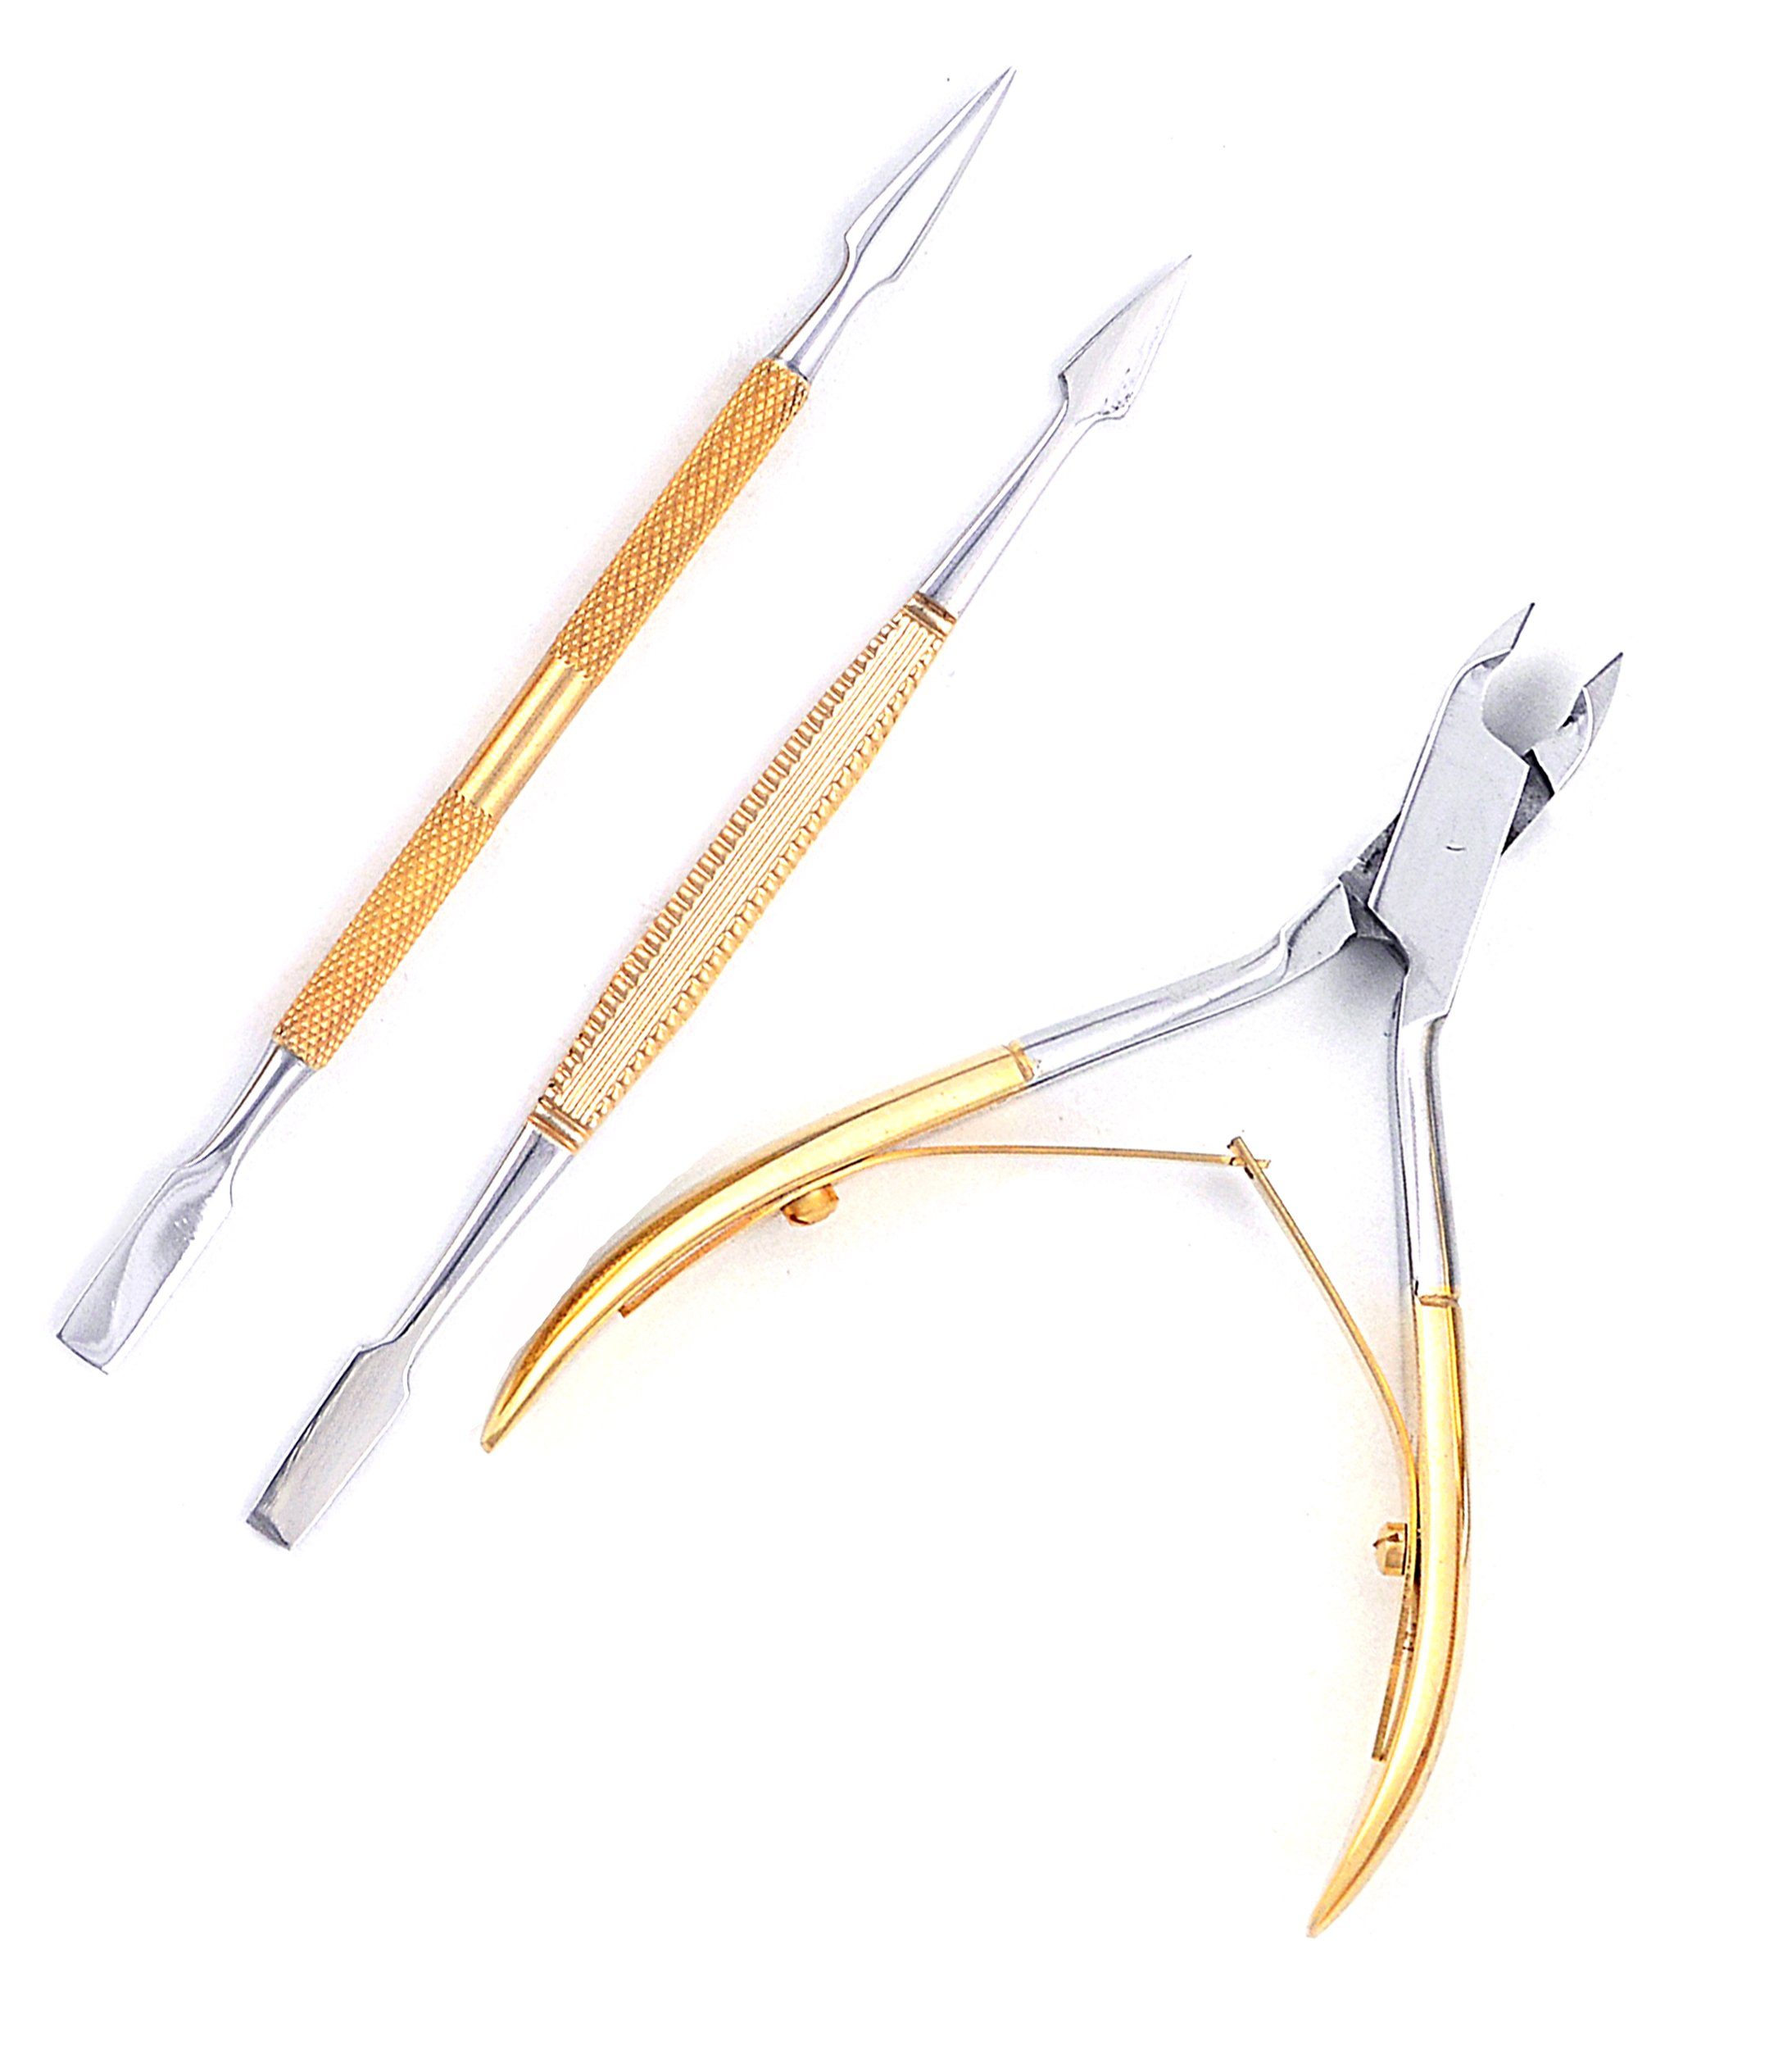 Cheap Gold Plated Nail Nipper, find Gold Plated Nail Nipper deals on ...